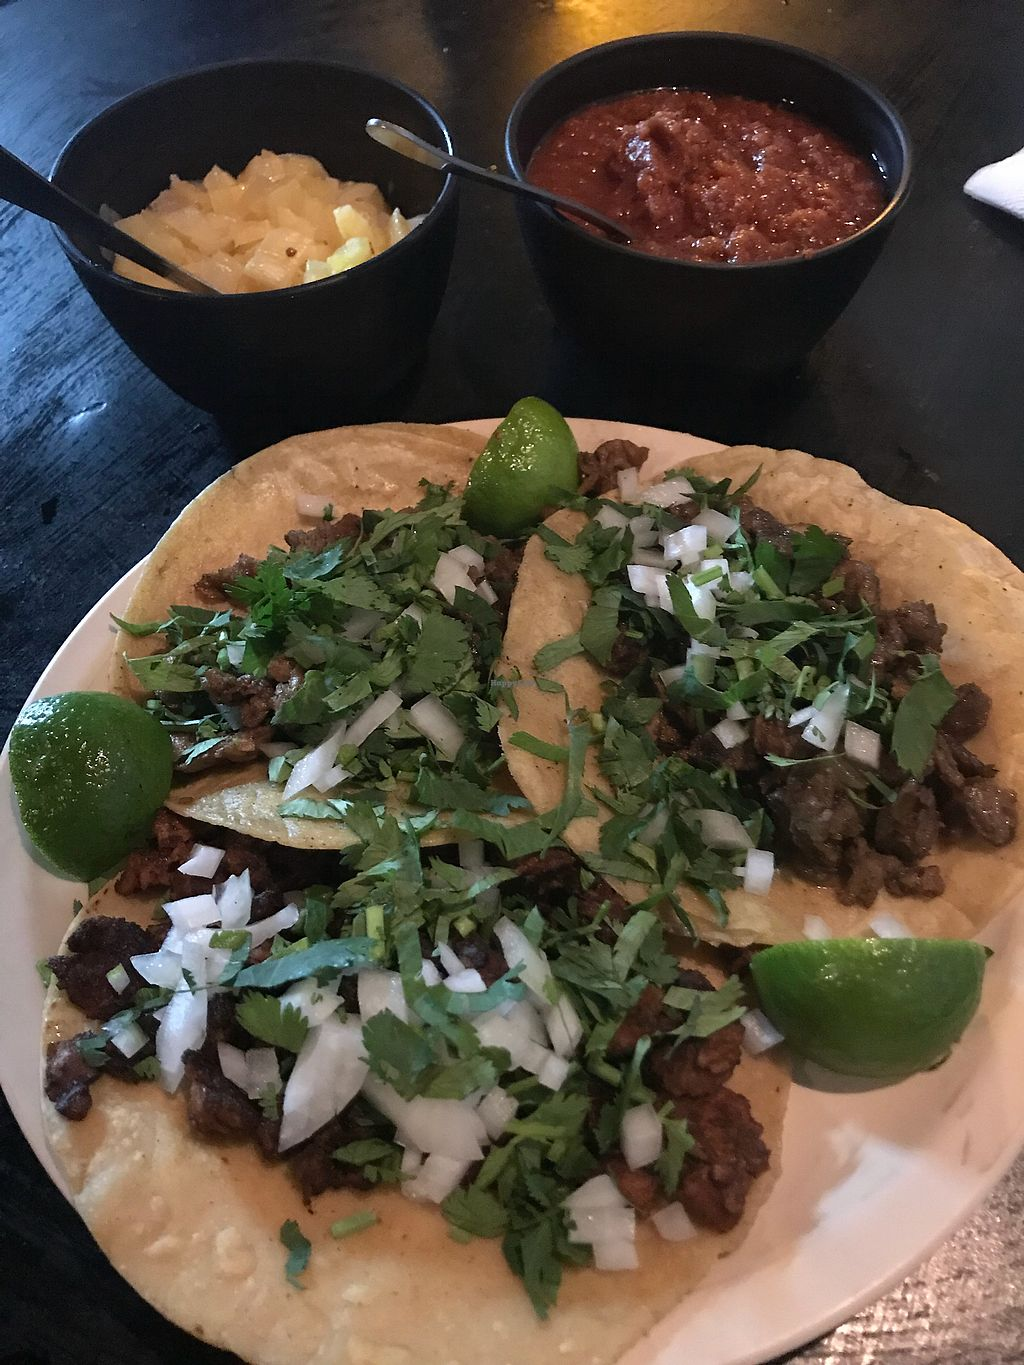 "Photo of Taquería Vegetariana La Takhe  by <a href=""/members/profile/rackoo"">rackoo</a> <br/>Vegan tacos, 3 kinds with housemade vegan cheese <br/> January 14, 2018  - <a href='/contact/abuse/image/66882/346569'>Report</a>"